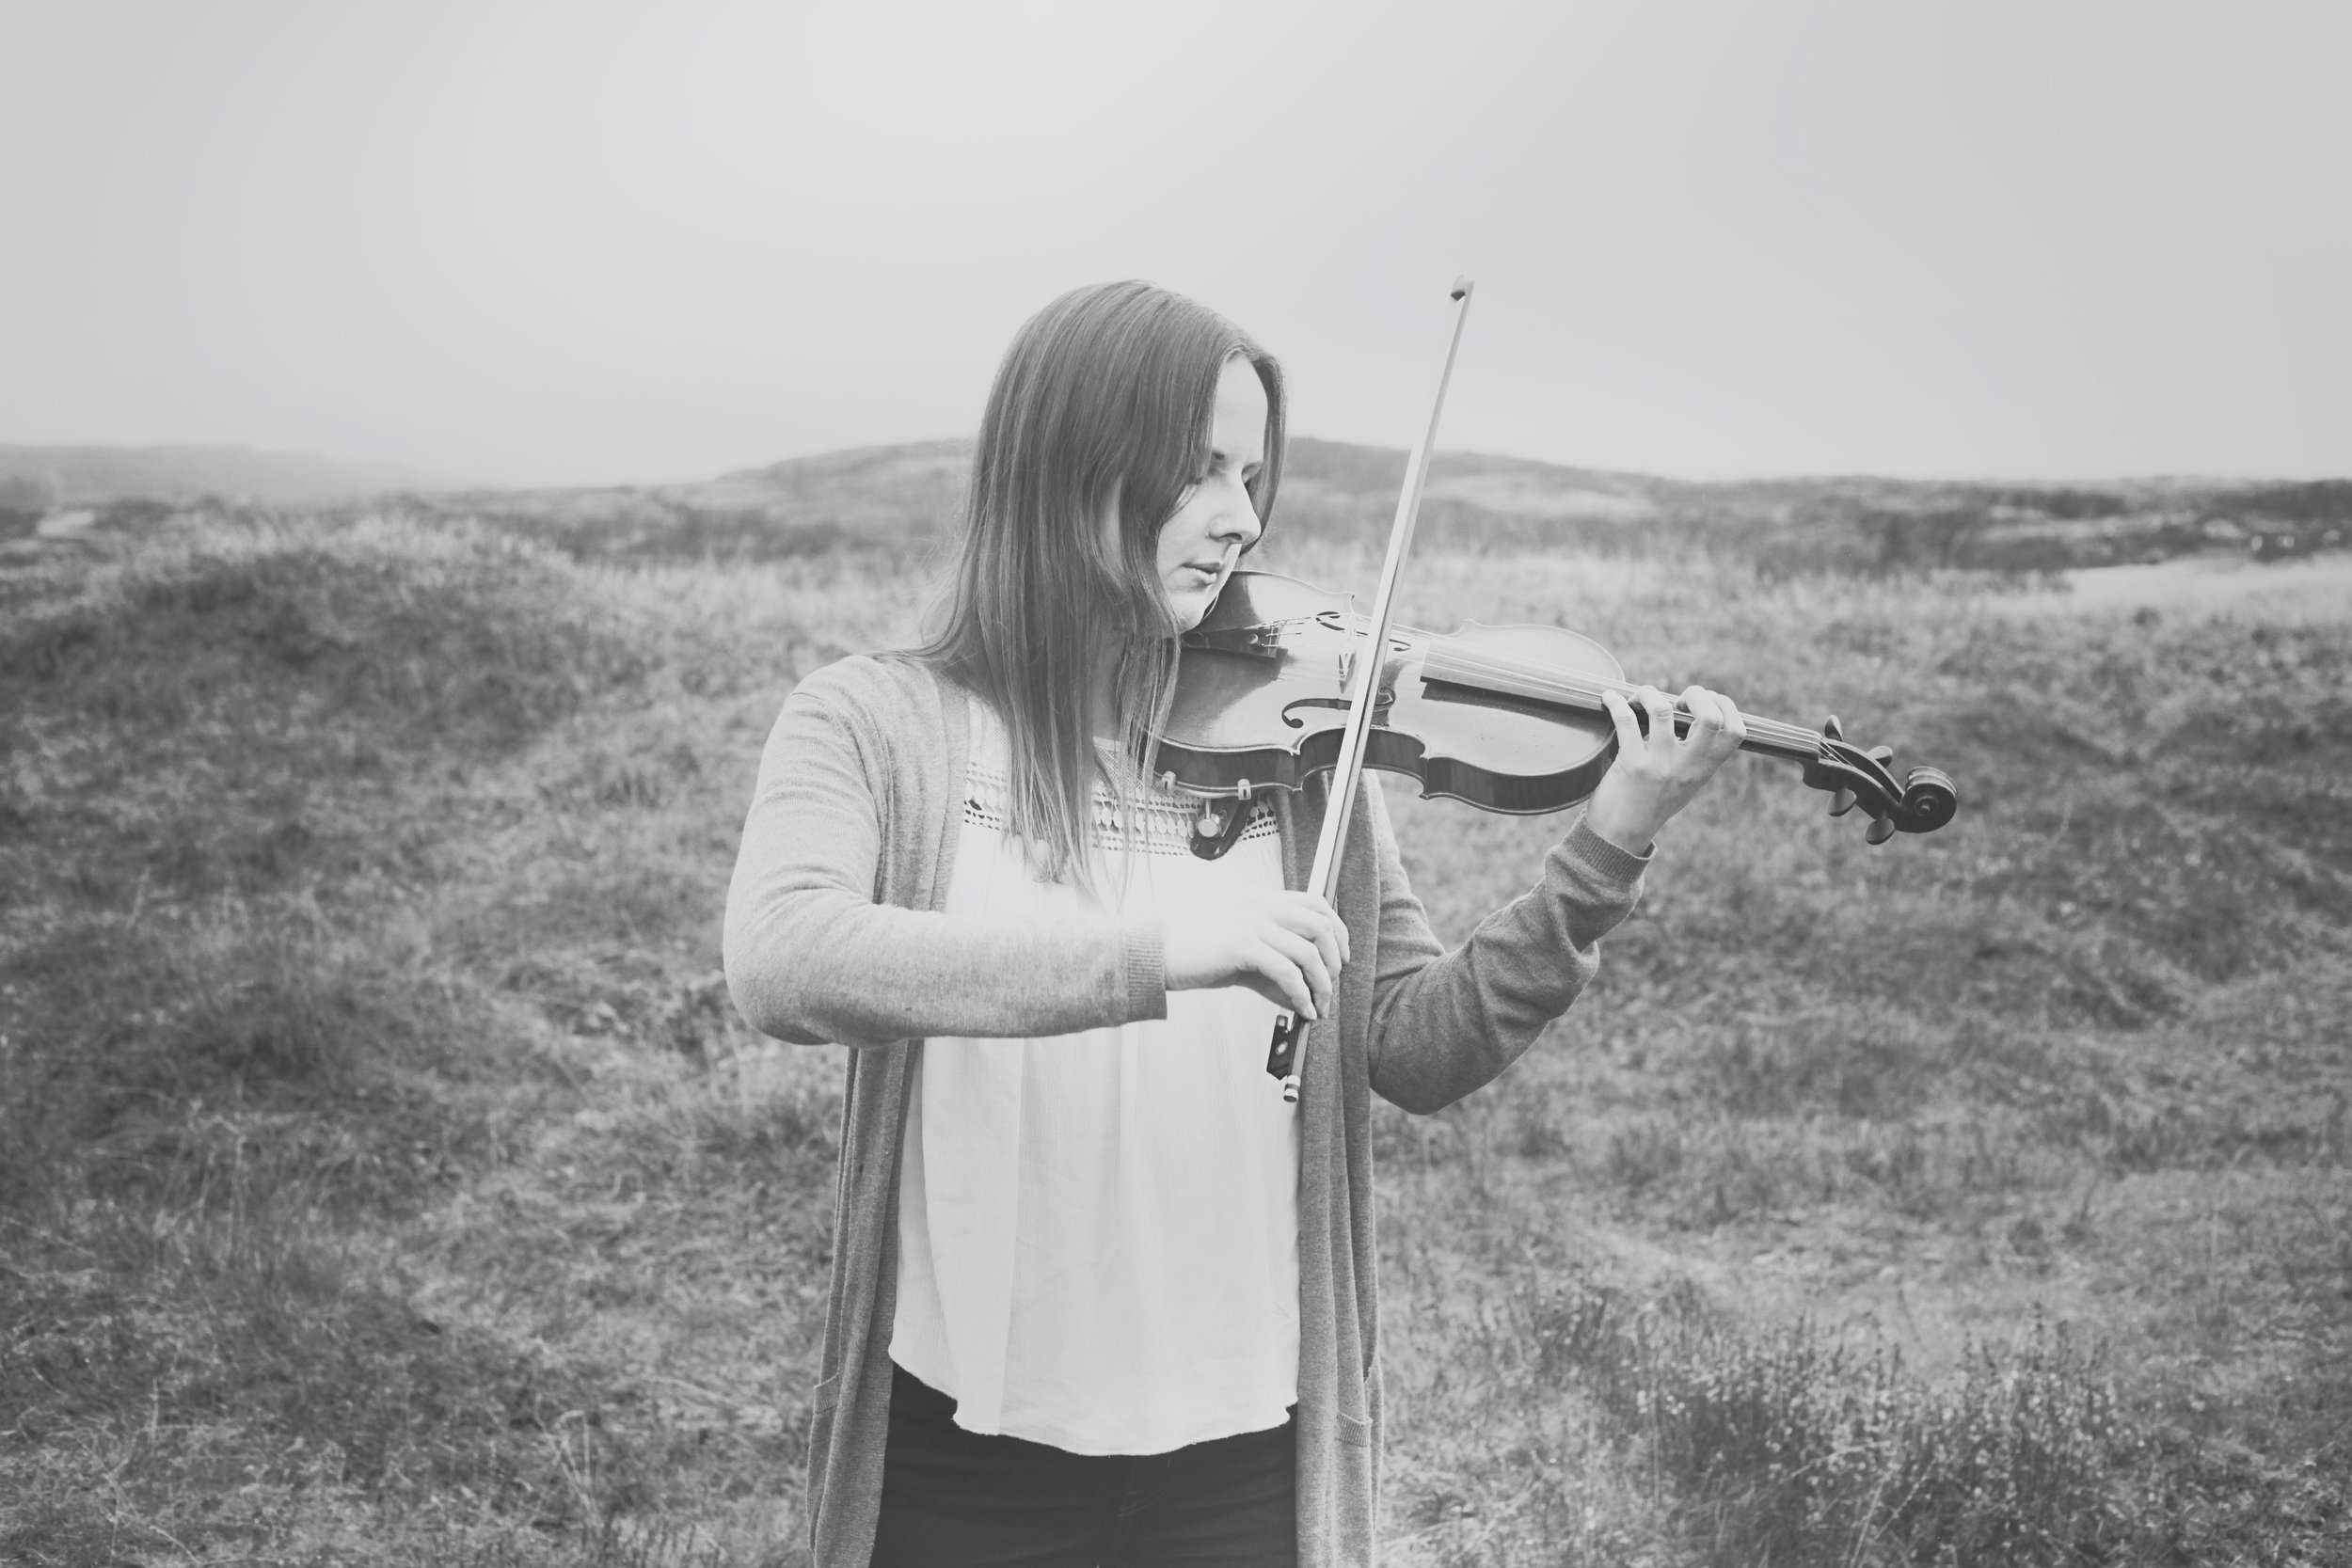 Isa Halme (Finland) - ISA studied violin at the Sibelius Academy in Finland. After graduating she's been working as an orchestra musician and is an active member of two chamber music groups that focus on improvising. Besides exploring new musical dimensions through improvisation she loves running, spending time in nature and slow mornings with an extra cup of coffee.